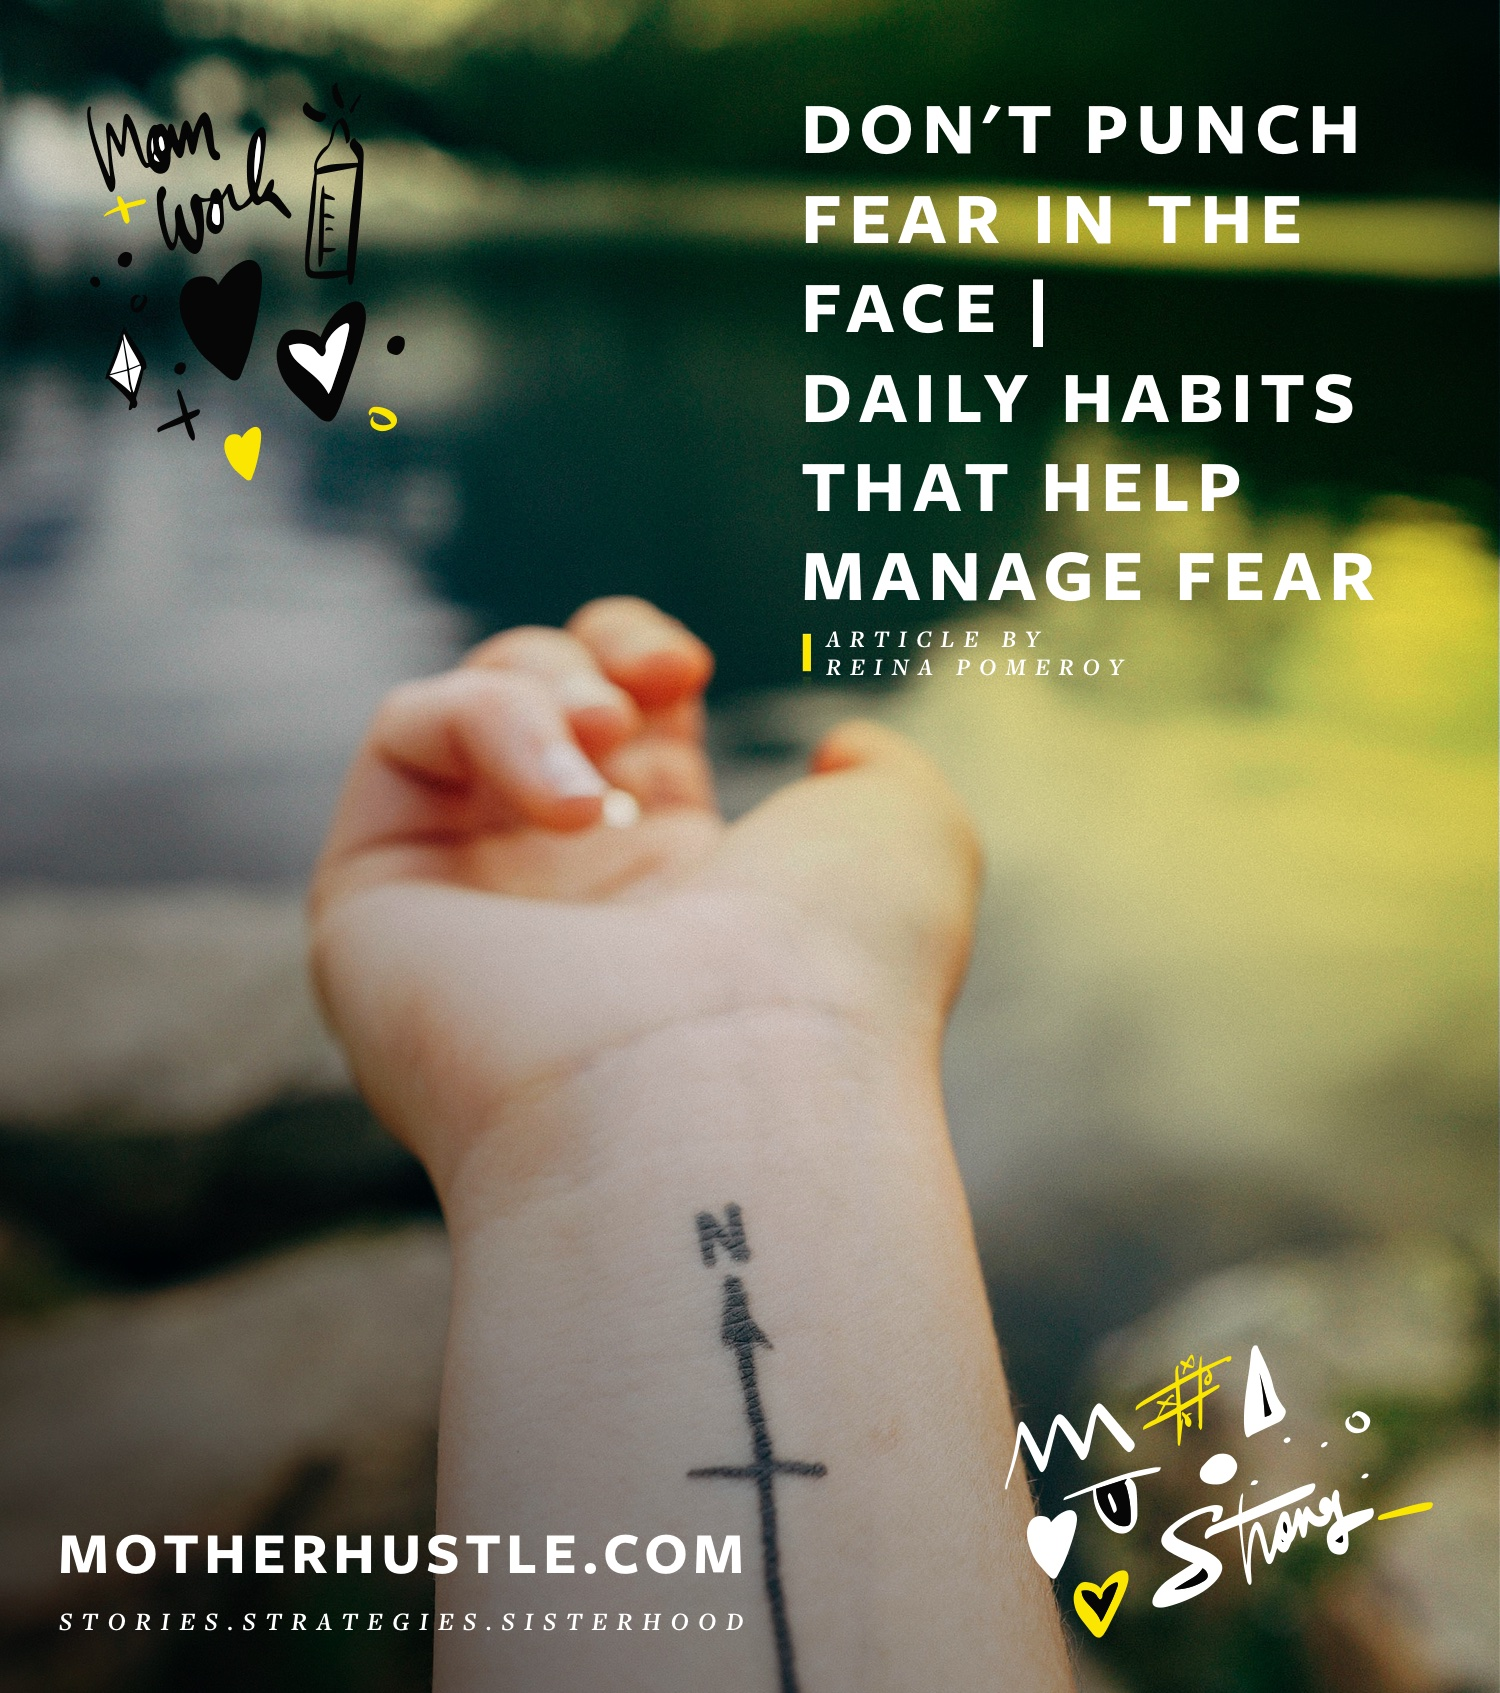 Don't Punch Fear in the Face- Daily Habits that Help Manage Fear - by Reina Pomeroy for MotherHustle